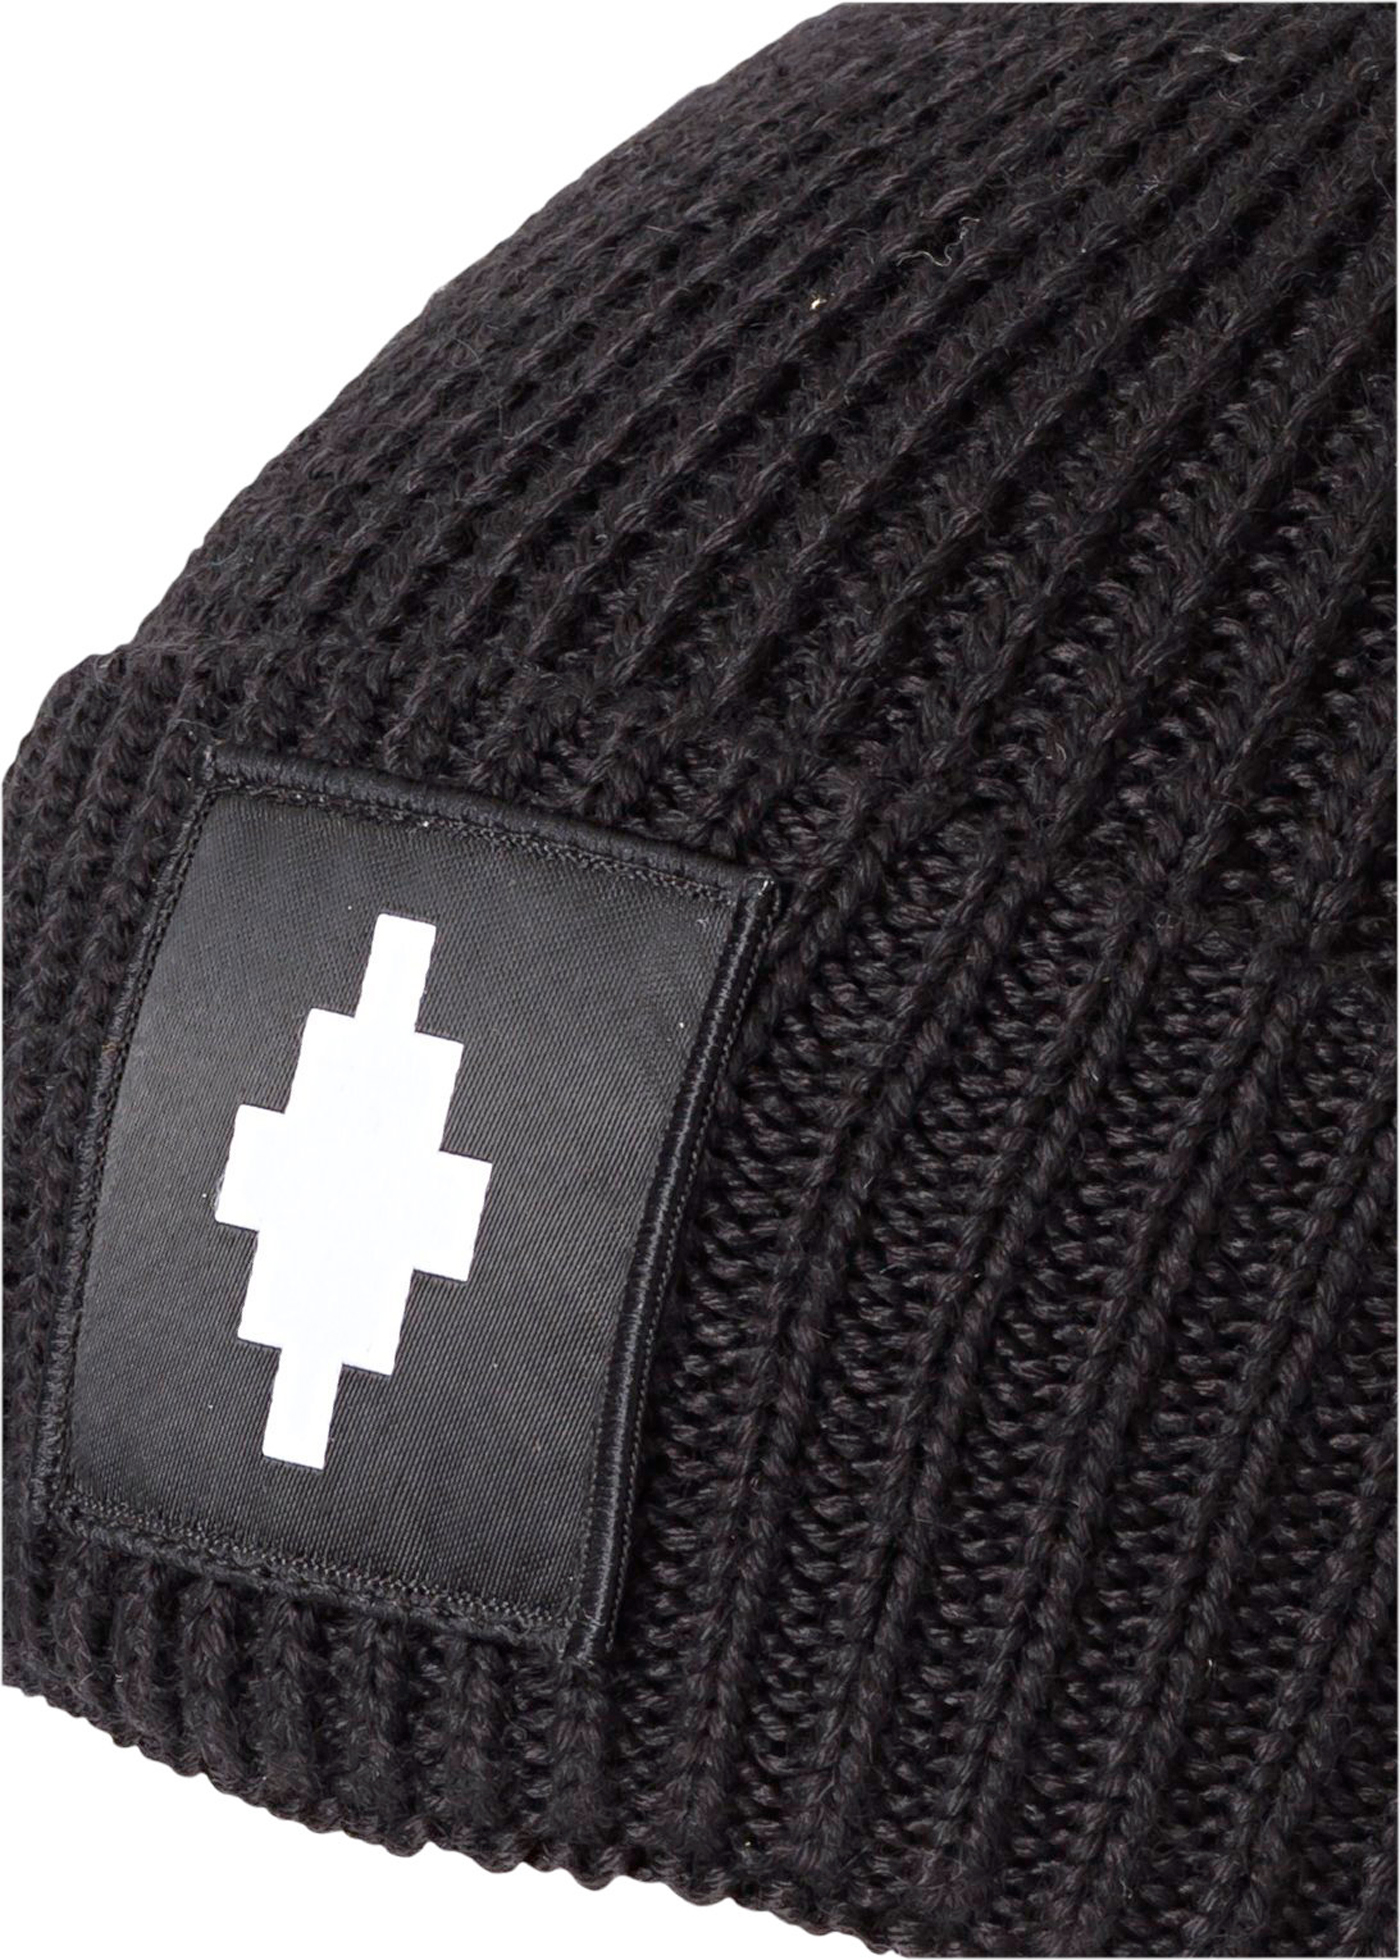 CROSS PATCH BEANIE image number 1